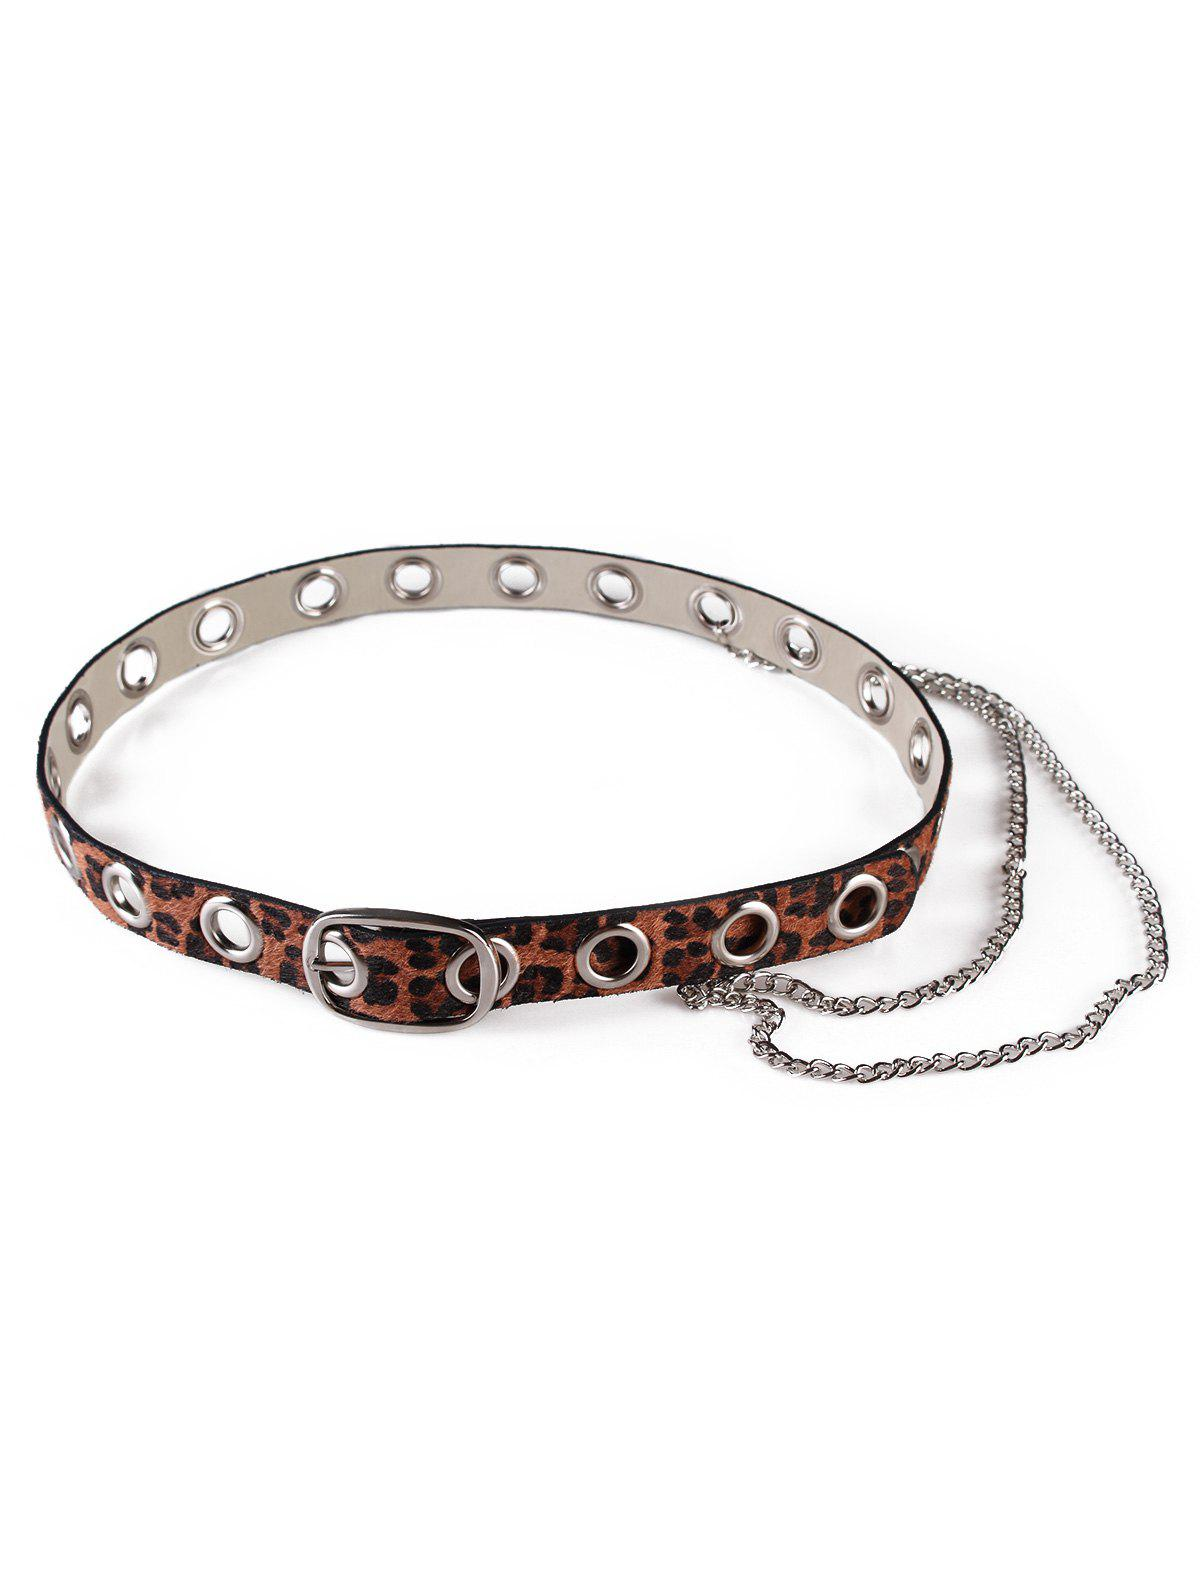 Fancy Punk Leopard Print Rivets Chain Belt